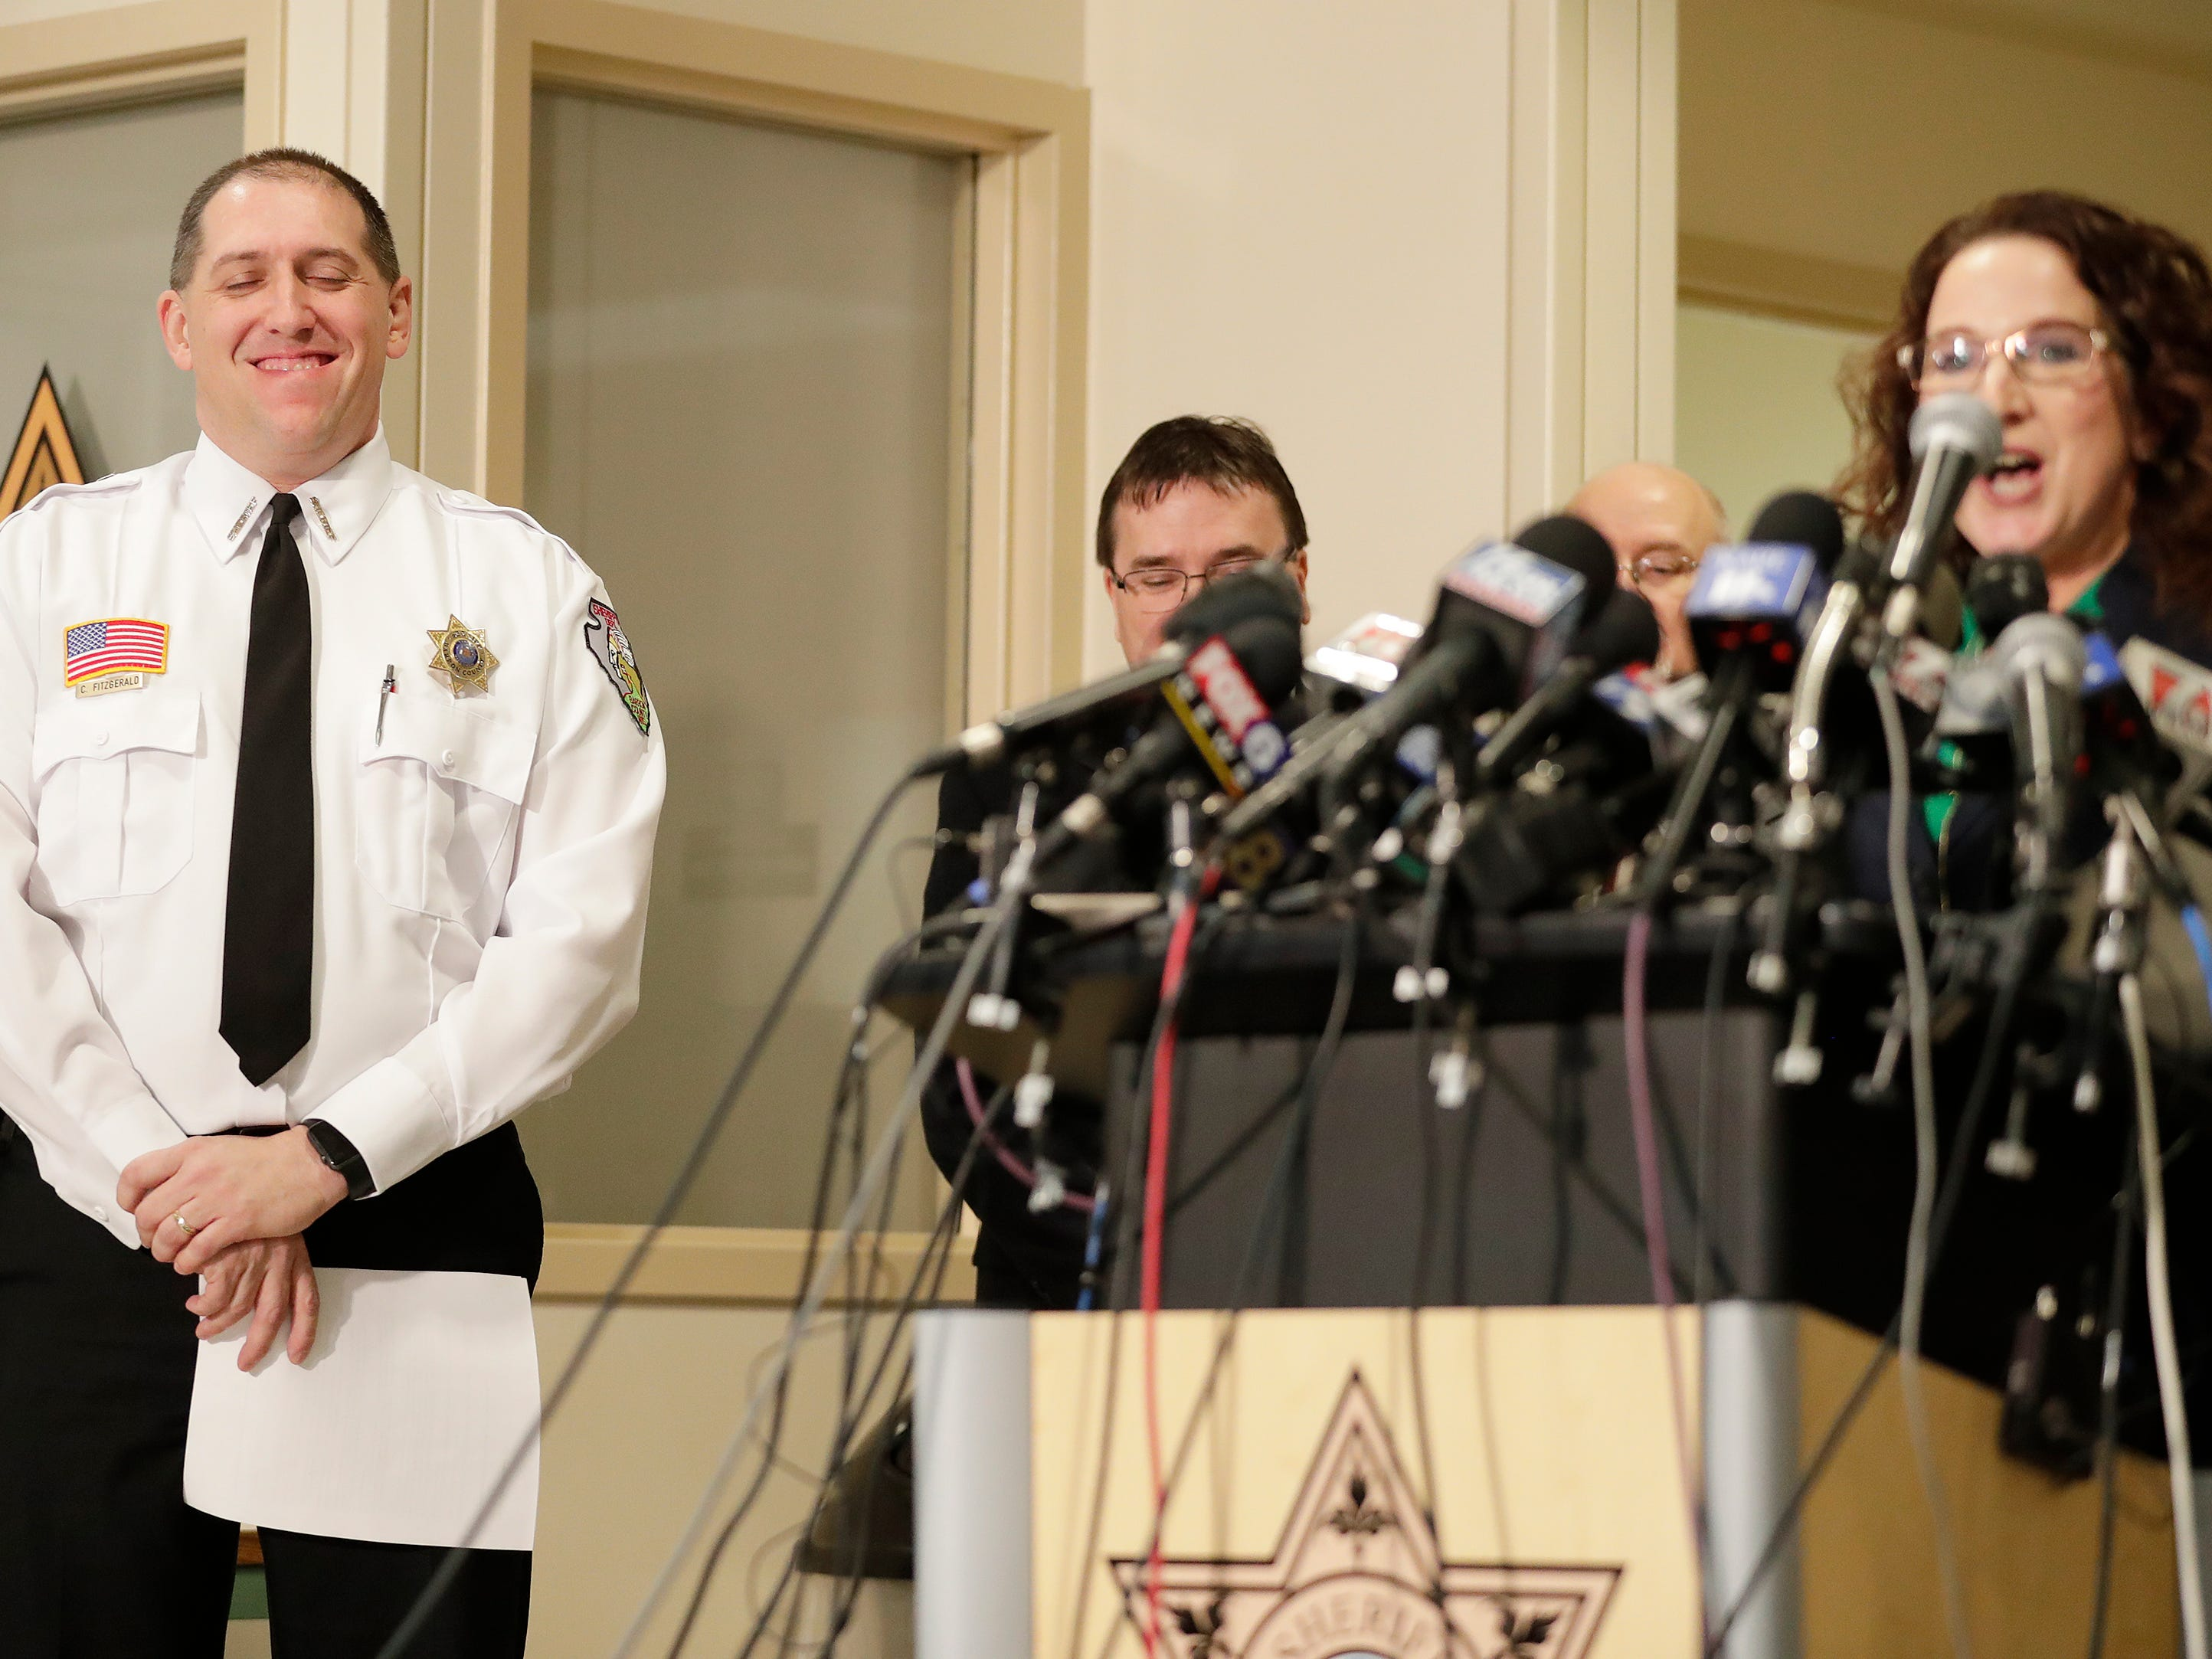 Barron County Sheriff Chris Fitzgerald smiles as Diane Tremblay, Superintendent of the Barron Area School District  talks about Jayme Closs being found during a press conference at the Barron County Sheriff's Department on Friday, January 11, 2019 in Barron, Wis. Douglas County officials found 13-year-old Jayme Closs on Thursday near the northern Wisconsin town of Gordon. Jayme had been missing since Oct. 15, the same day her parents, James, 56, and Denise, 46, were found shot to death in their home outside Barron.